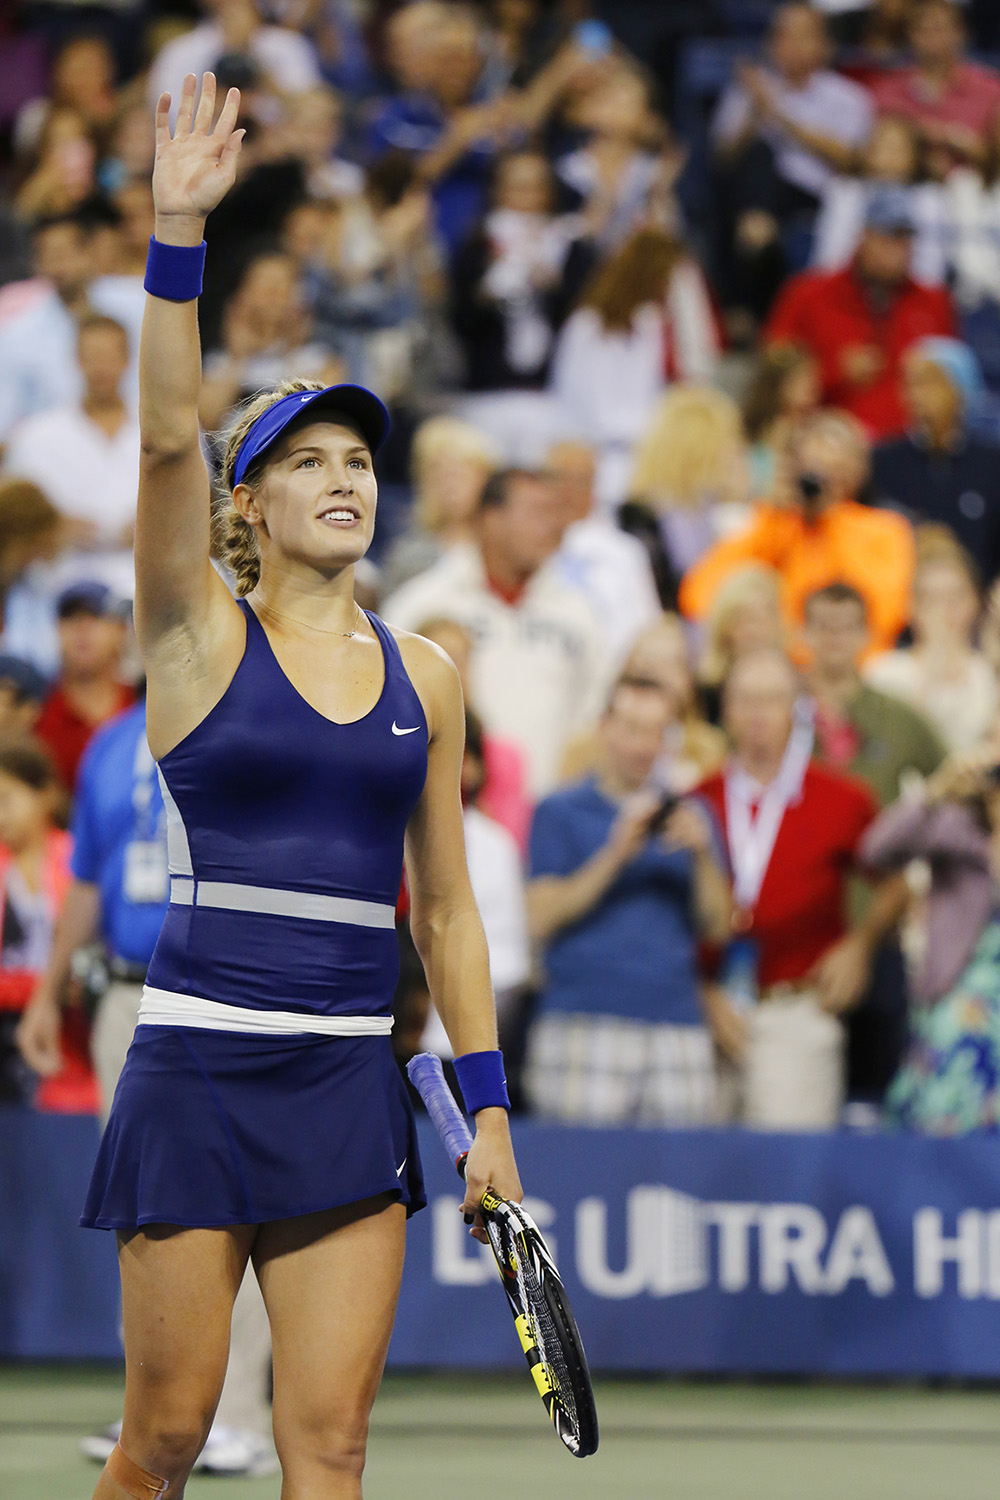 Eugenie Bouchard celebrates victory after third round march at US Open 2014